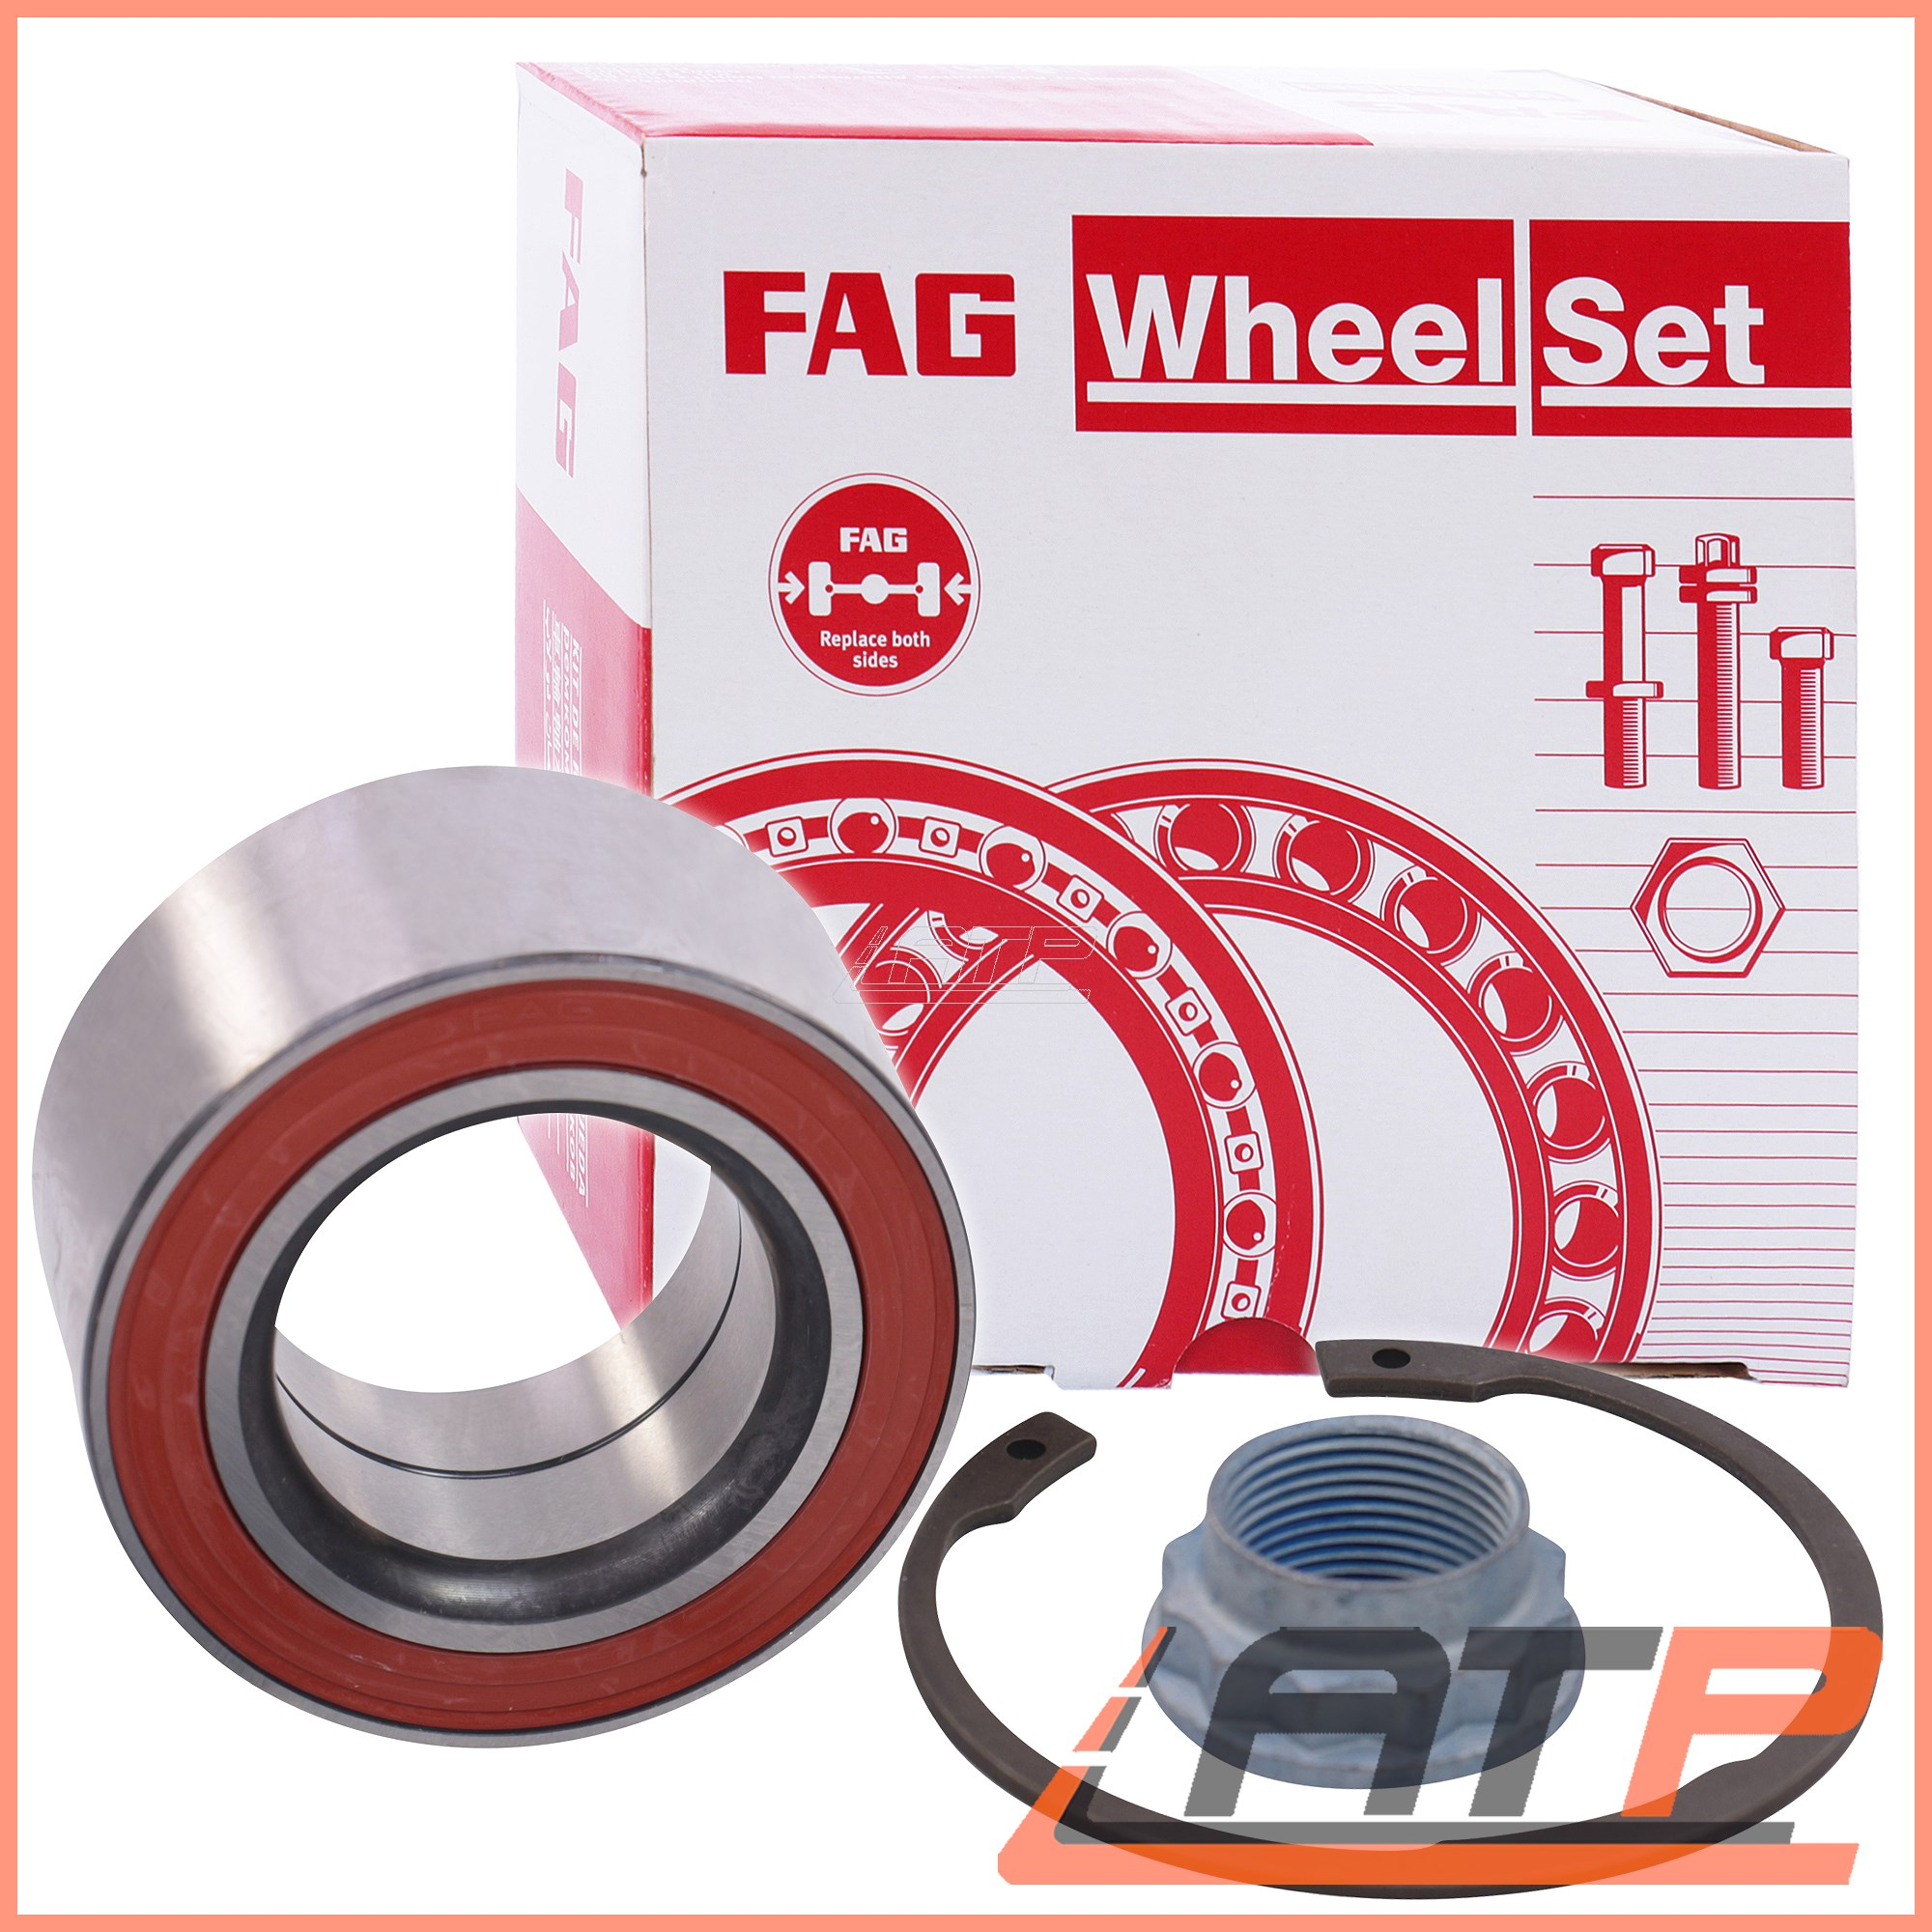 1X FAG WHEEL Bearing Set Rear Bmw Z1 88-90 Z4 E86 E85 3 Series E36 E46